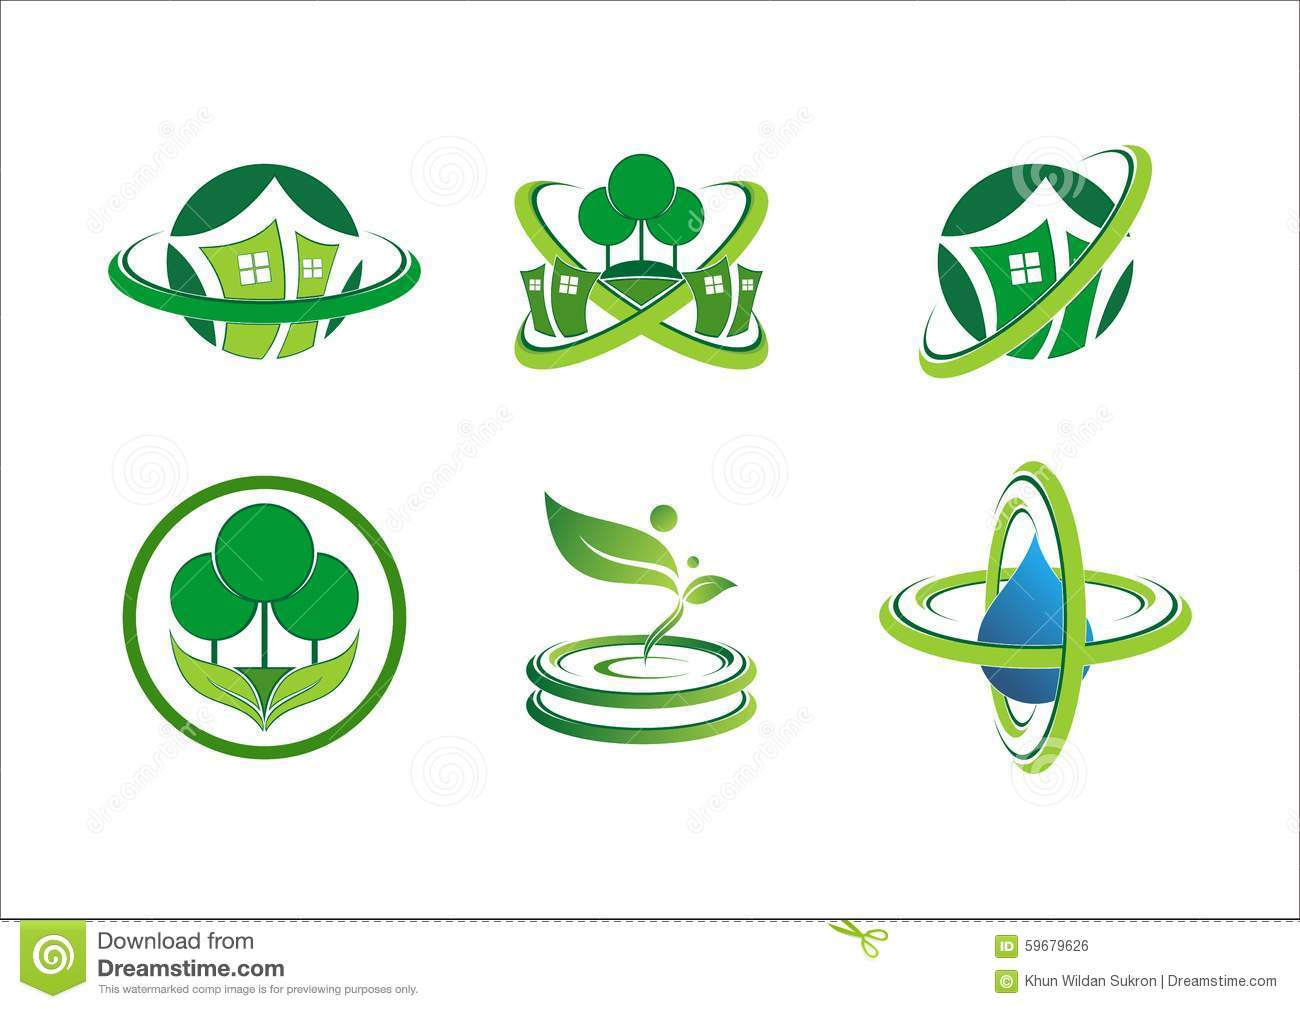 Circle Connection Home Plant Logo House Building Landscape Real Estate Green Nature Symbol Icon